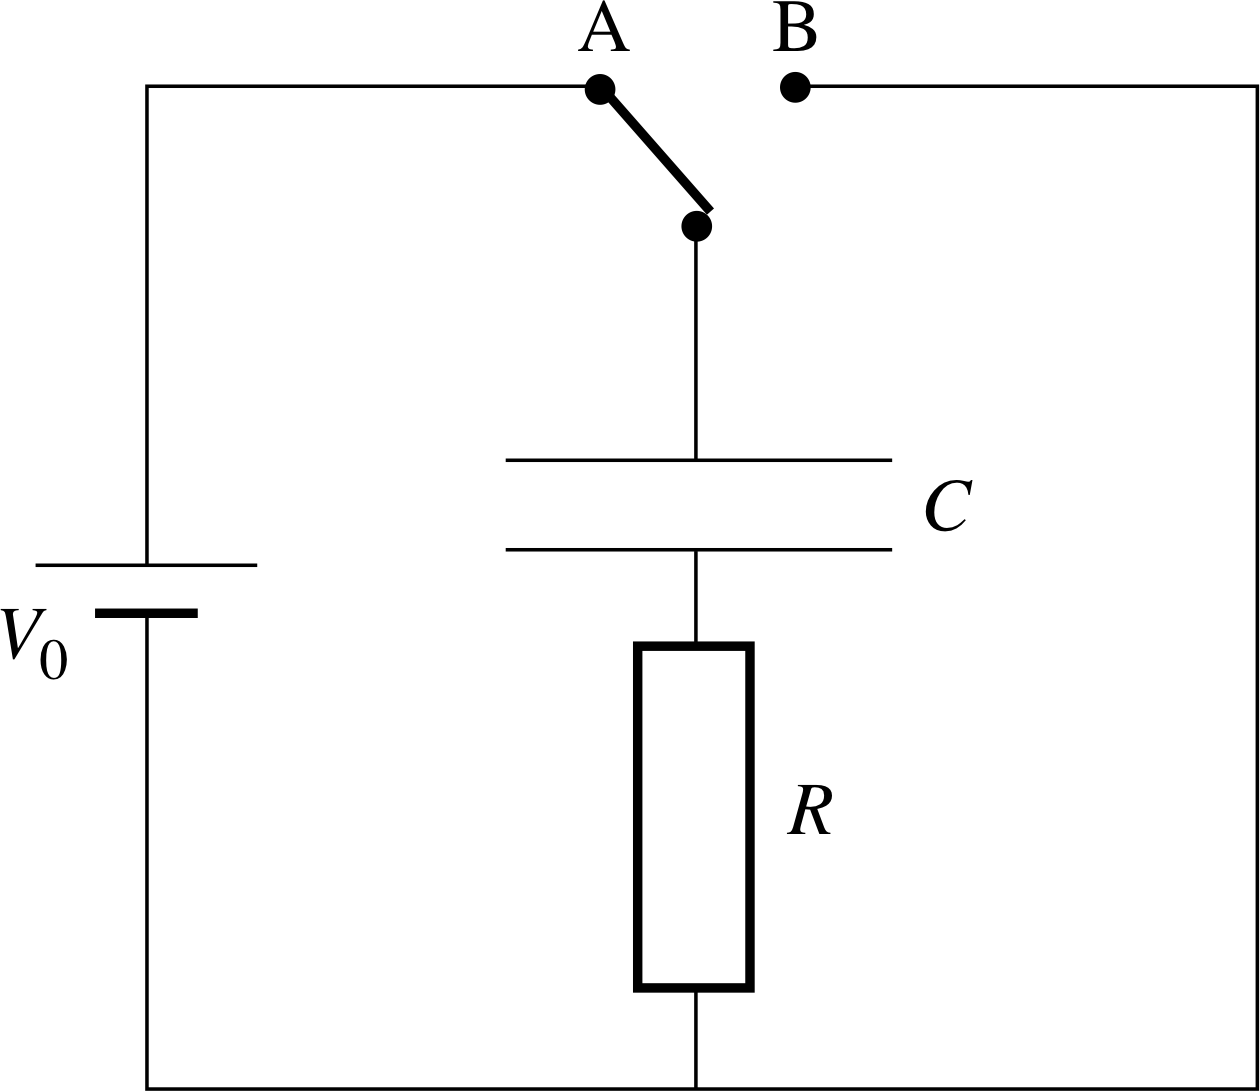 Pplato Flap Phys 45 Energy In Electric And Magnetic Fields How To Make A Potato Battery Circuit Diagram Image 24 Transient Currents Capacitive Circuits